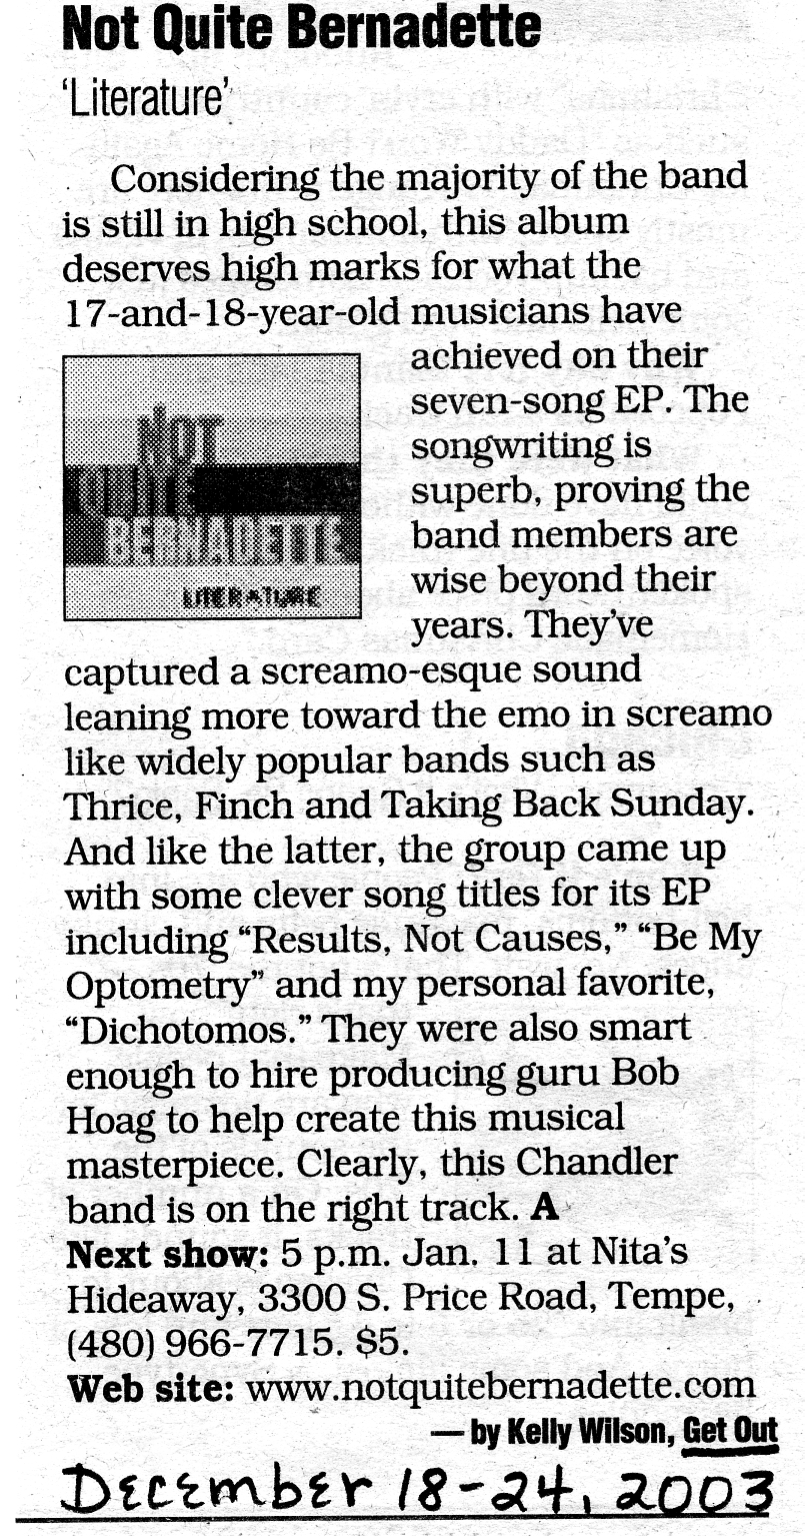 """Throwback to decade-old review of Not Quite Bernadette's """"Literature"""""""